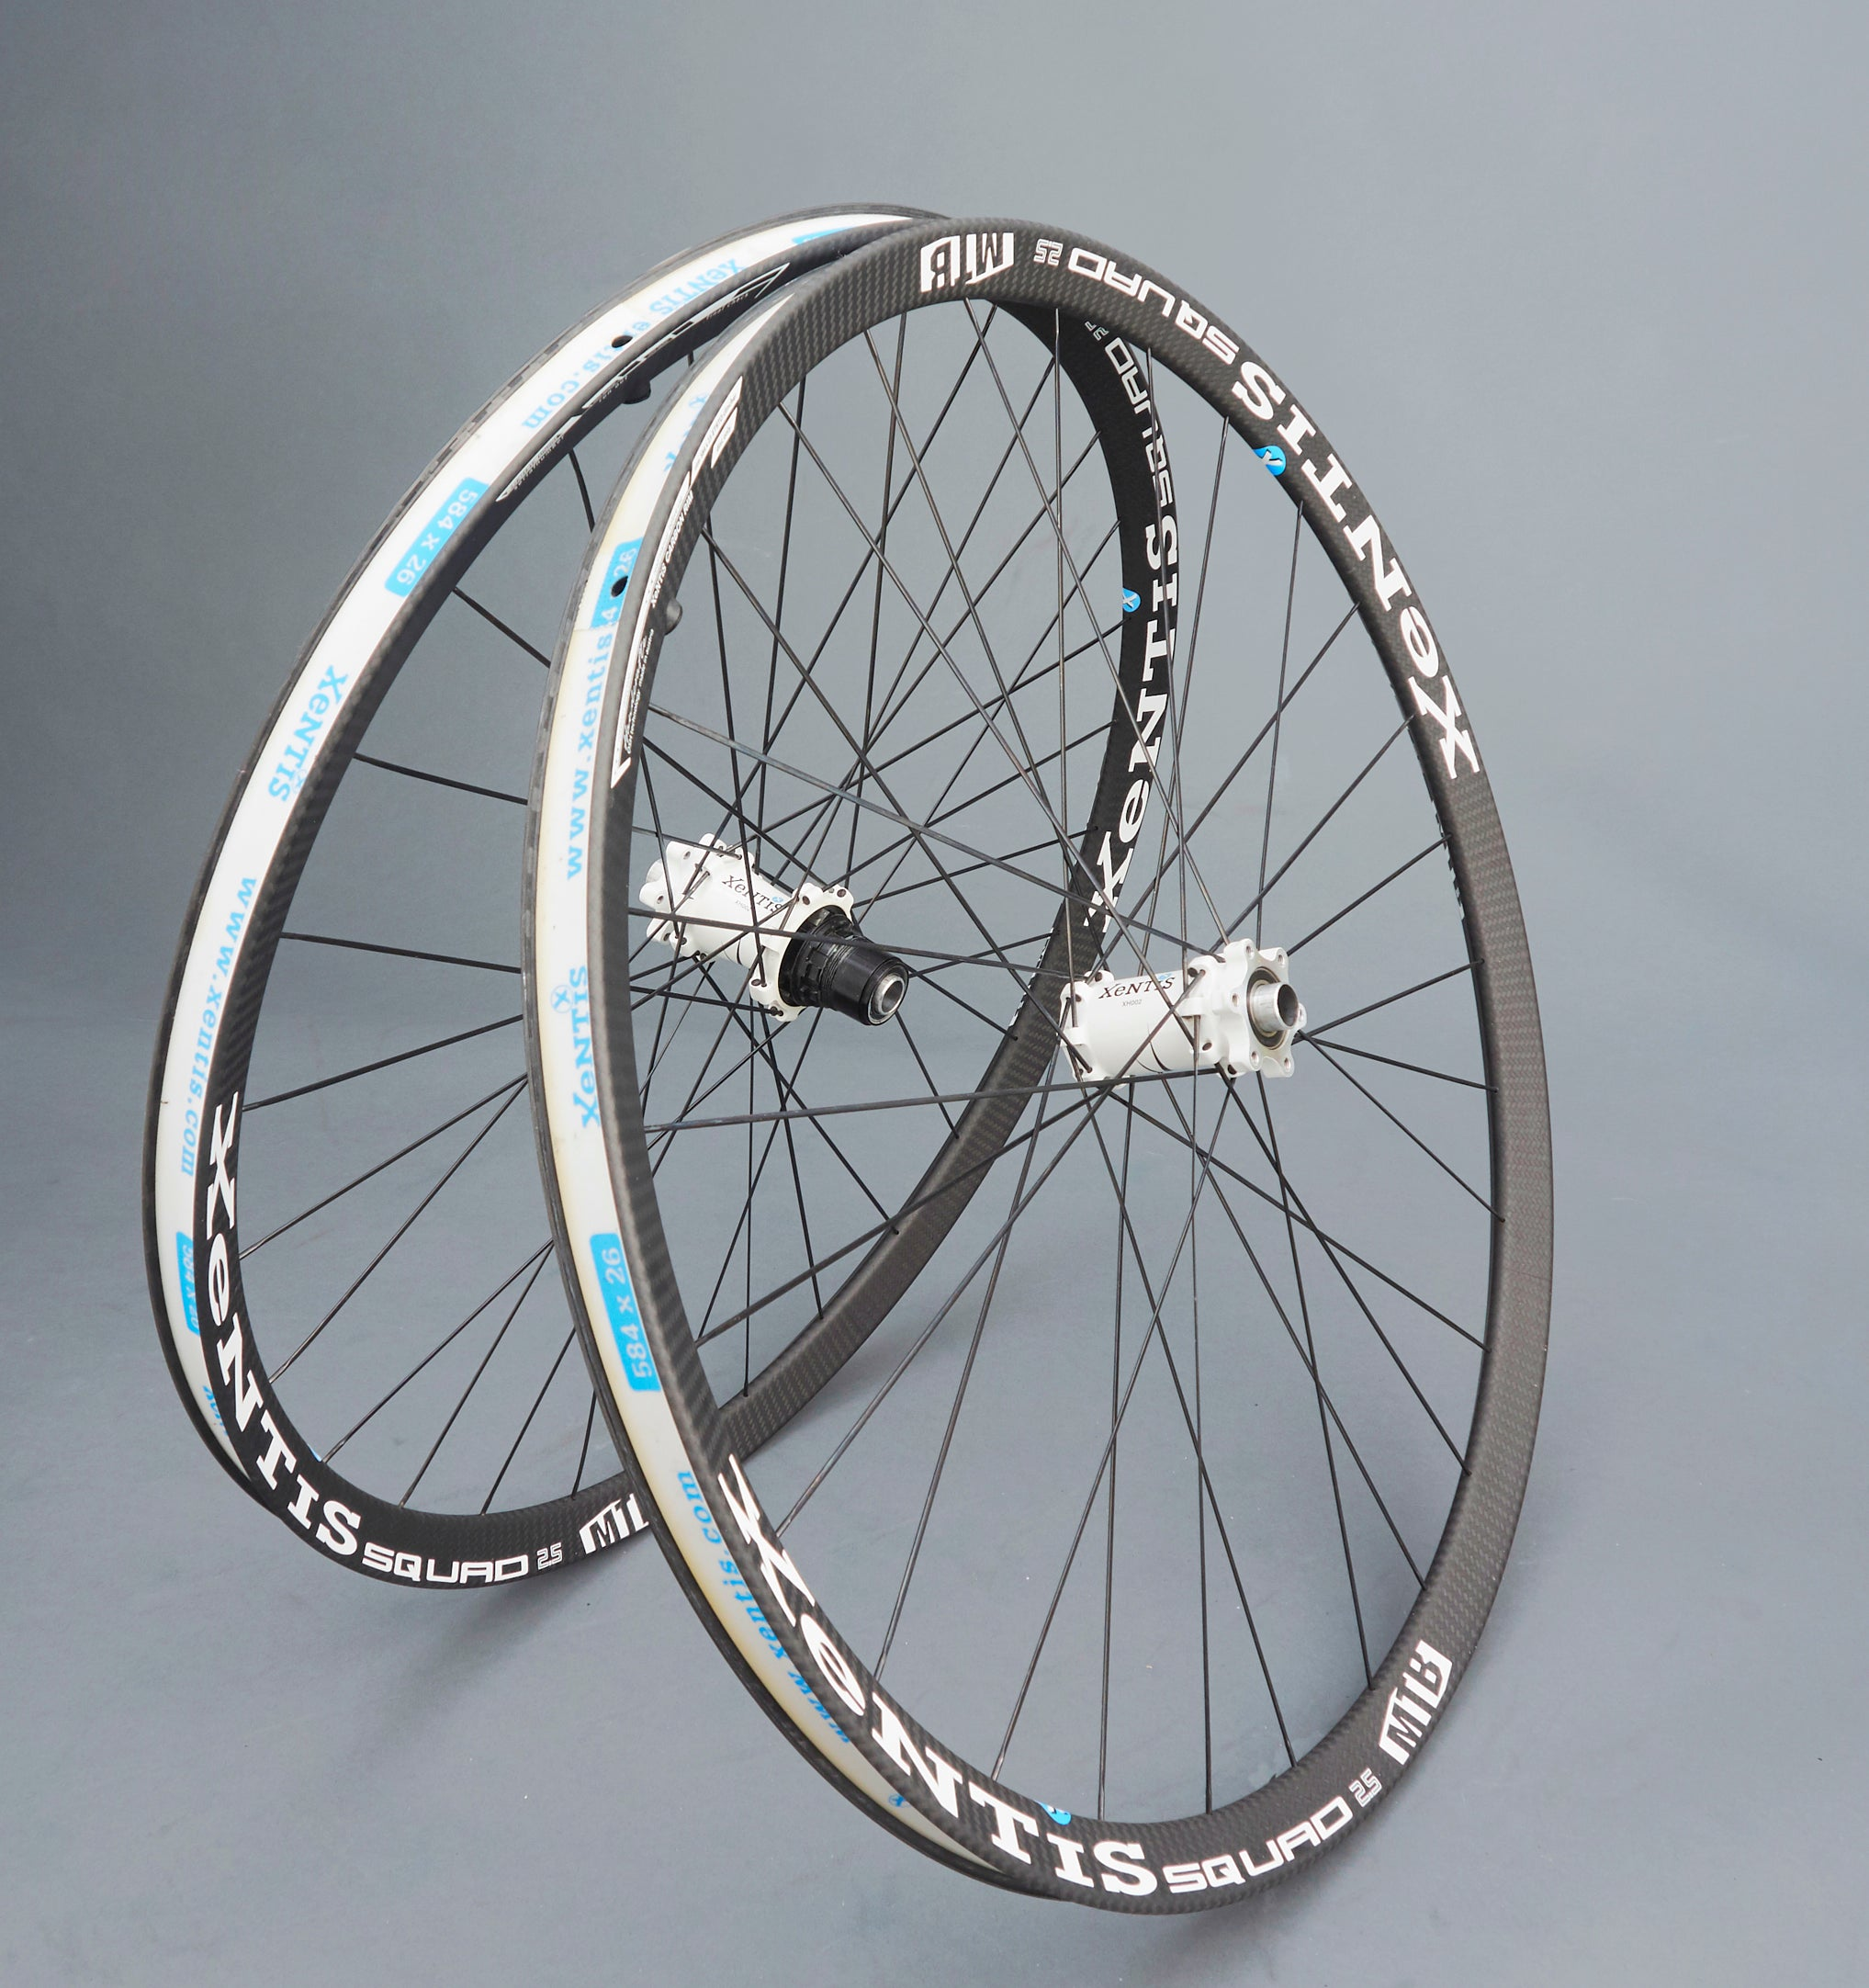 Xentis Squad 2.5 CC Carbon Clinchers